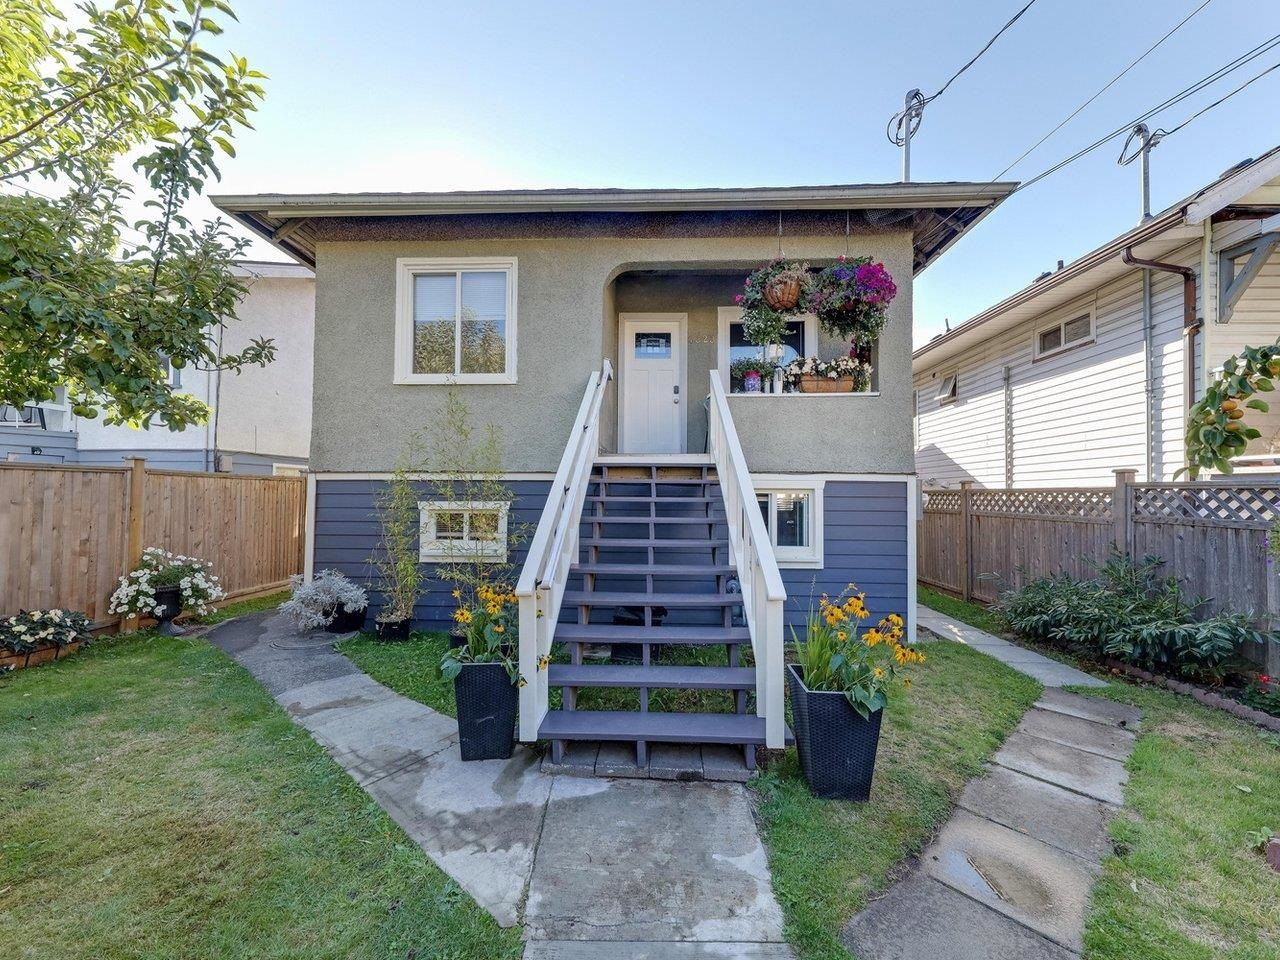 Main Photo: 4323 MILLER Street in Vancouver: Victoria VE House for sale (Vancouver East)  : MLS®# R2614148